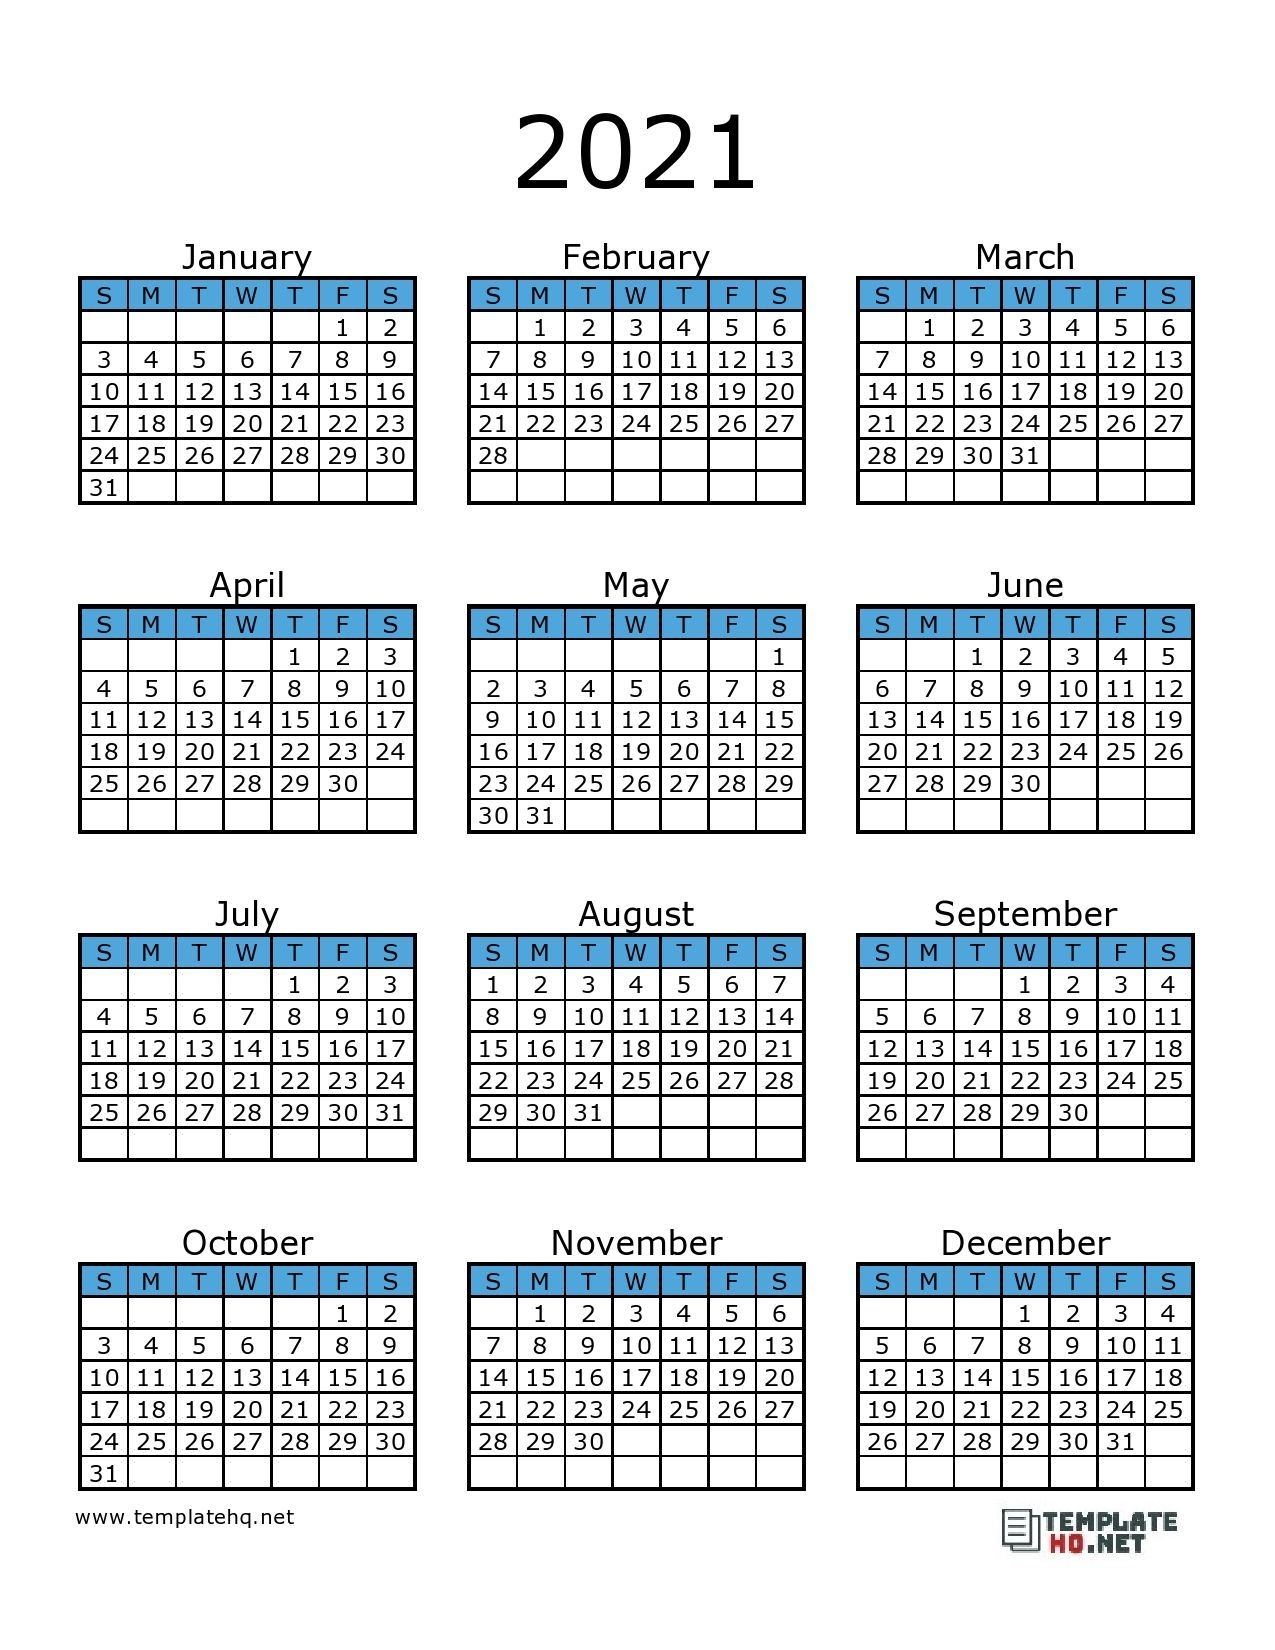 Click the following image links to print the free printable 2021 printable calendar pages individually. Printable 2021 F-1 Schedule - Example Calendar Printable